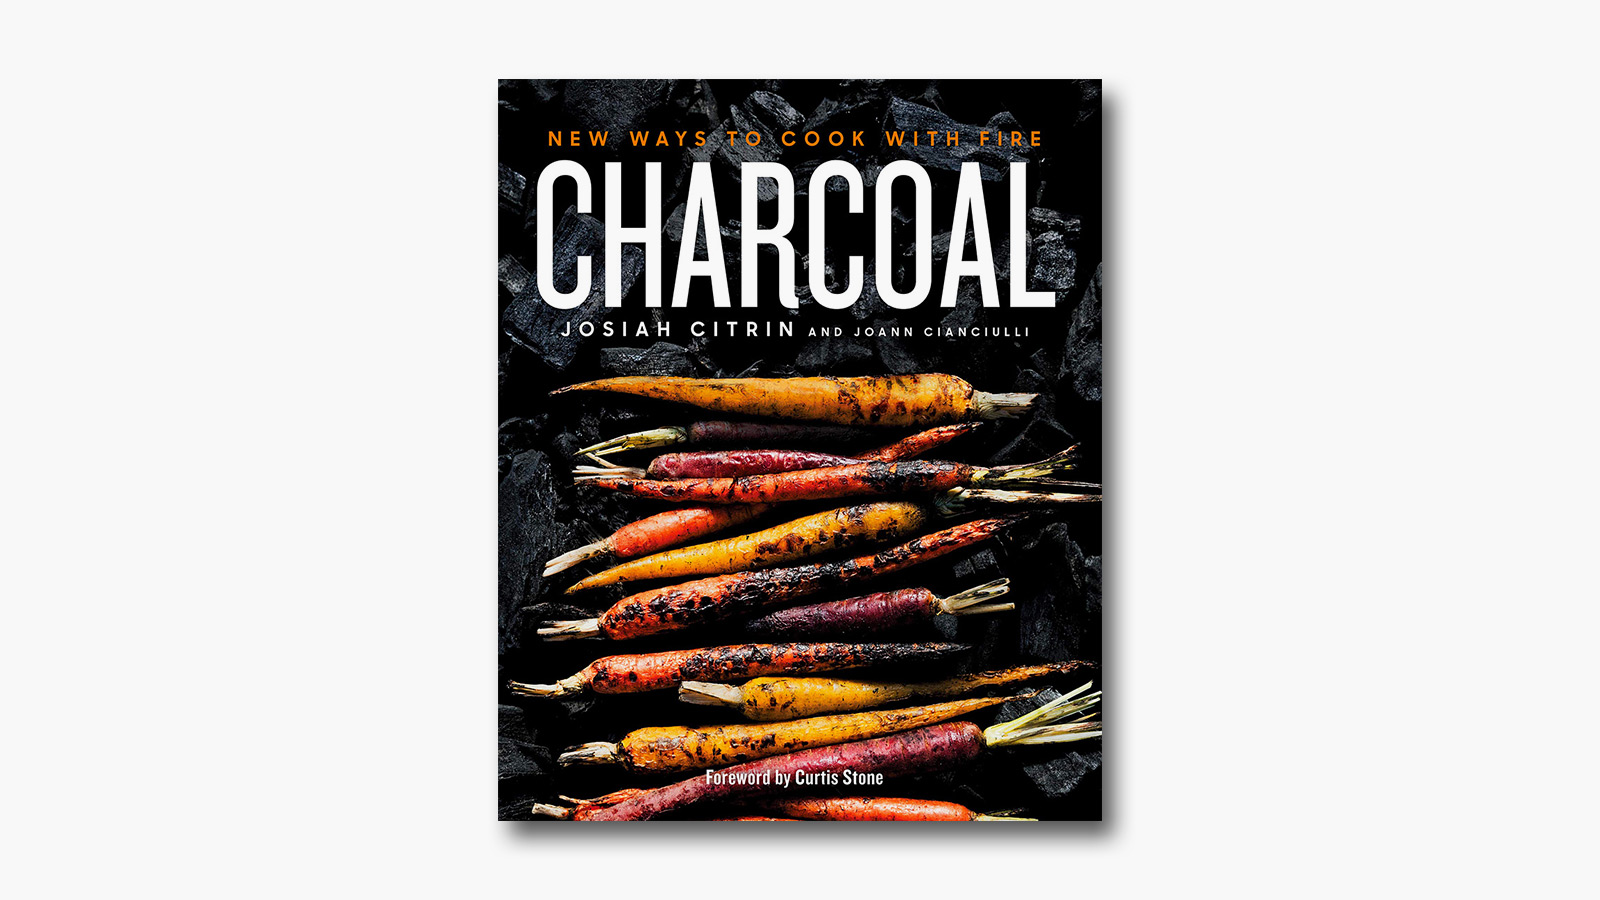 'Charcoal: New Ways to Cook with Fire' by Josiah Citrin & Joann Cianciulli